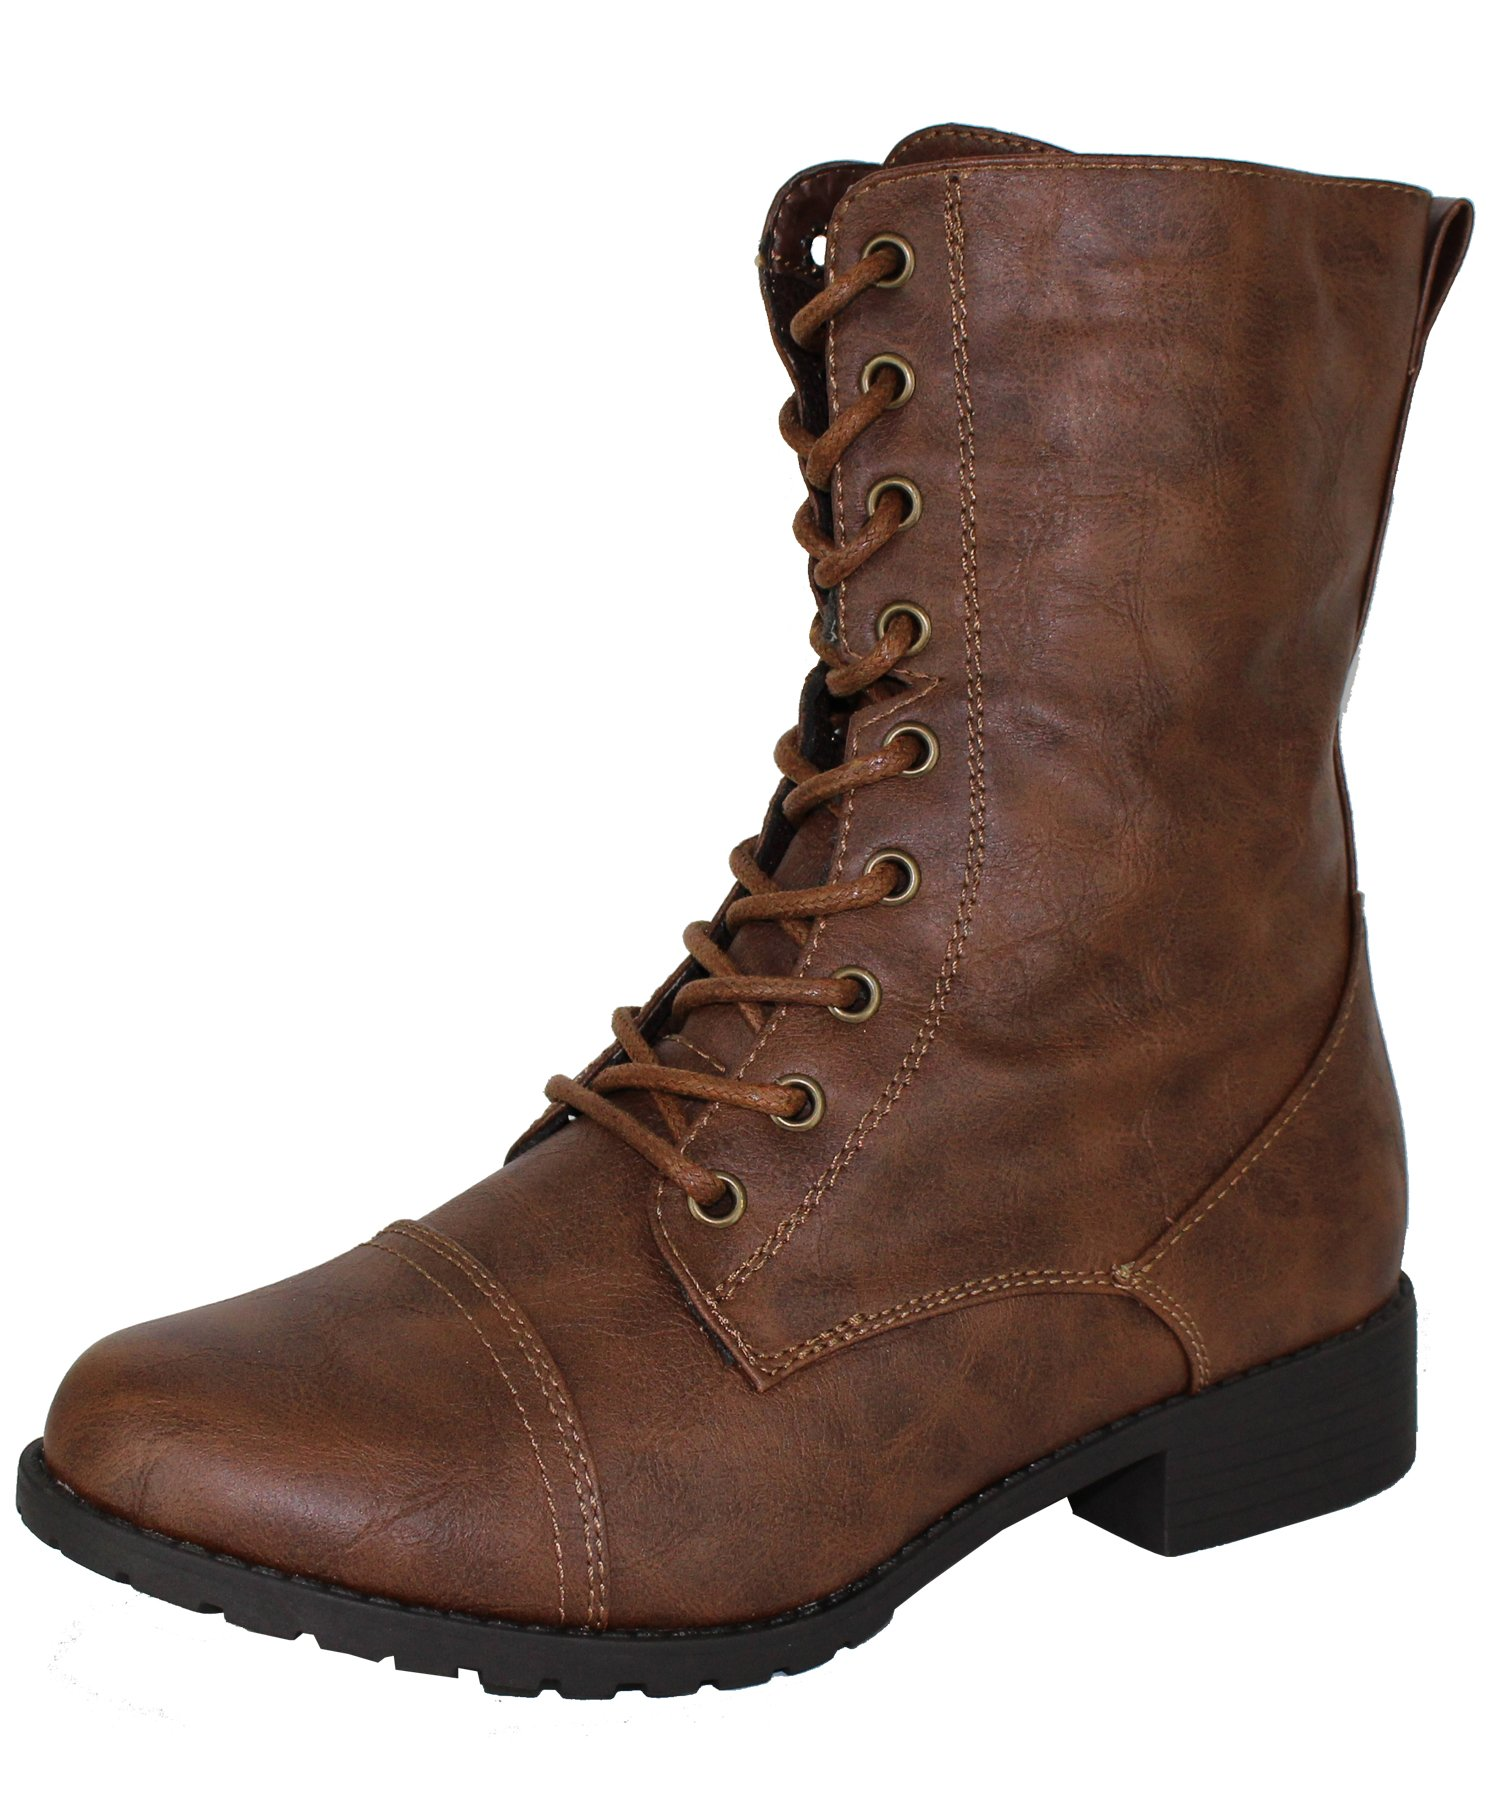 Forever Link Womens Mango Round Toe Military Lace Up Knit Ankle Cuff Low Heel Combat Boots (9 B(M) US, Brown)